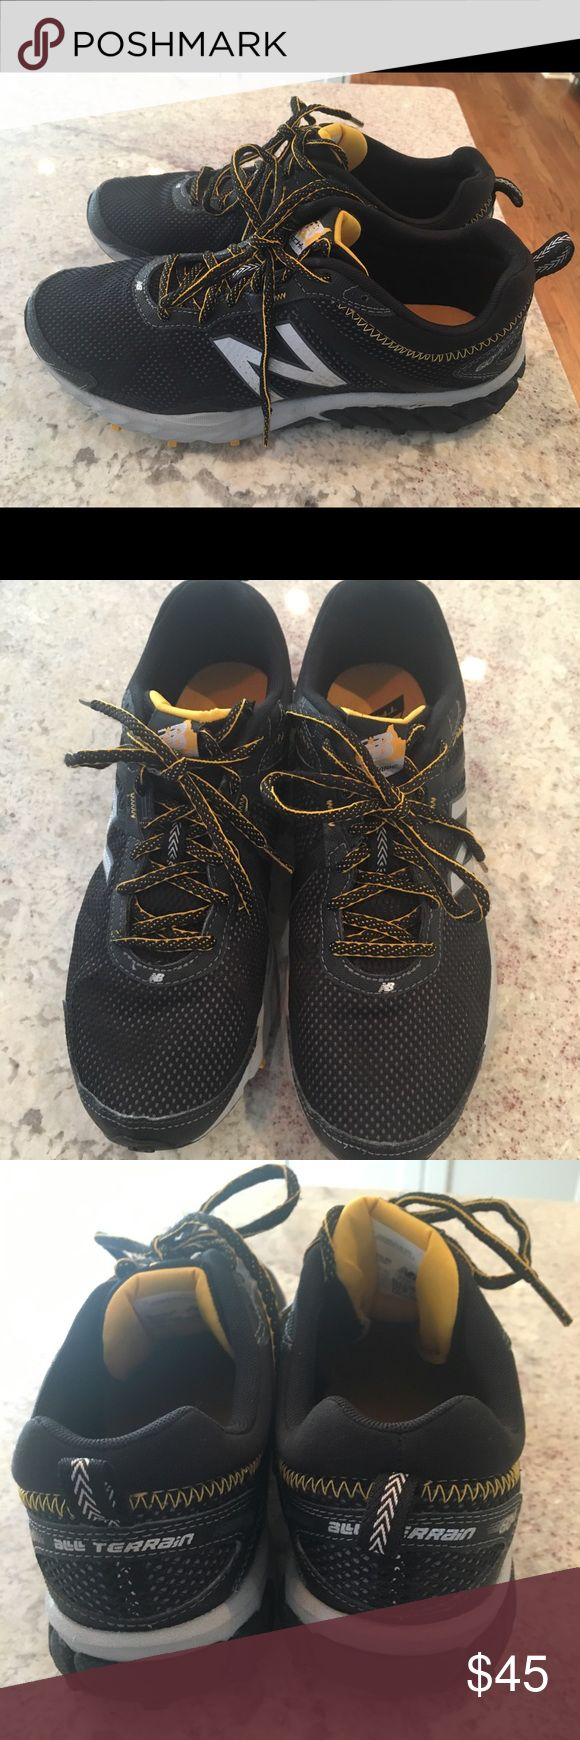 Men's New Balance shoes size 8.5 Men's New Balance all terrain shoes, size 8.5.  Very good condition with minimal wear.  Still look new.  Black, yellow and silver.  Yellow and black shoe strings. New Balance Shoes Sneakers